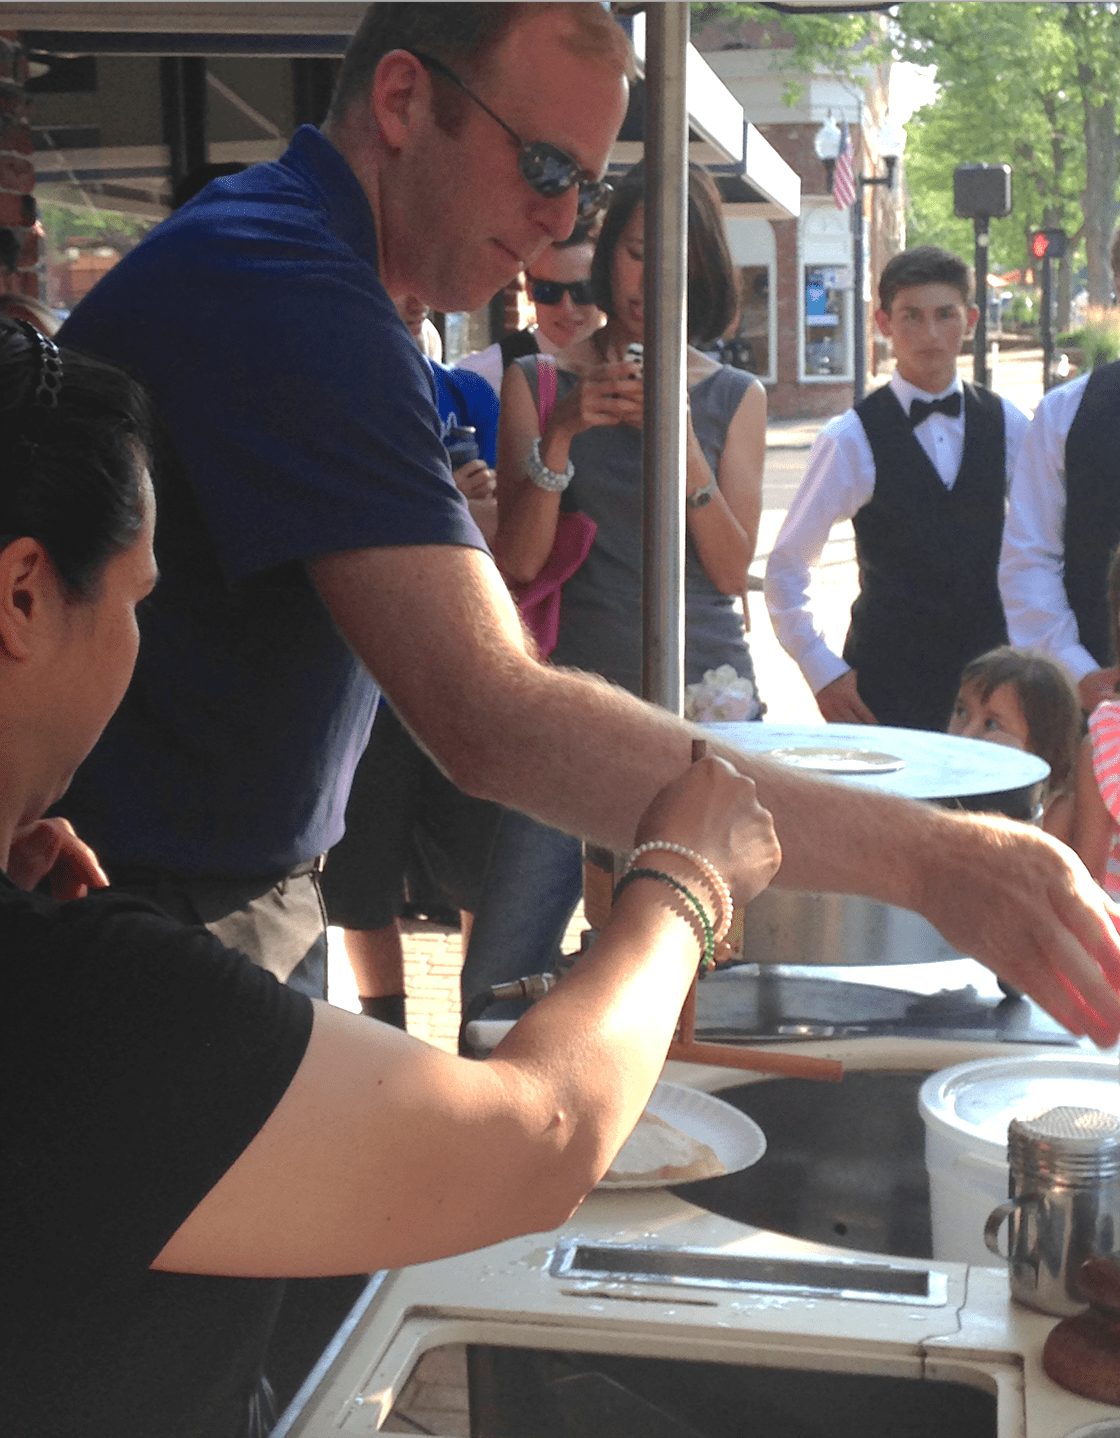 Rob Levine tries his hand at crepe making at the La Petite France crepe cart in West Hartford Center at the start of the Fashion Show event on June 23, 2016. Photo credit: Joy Taylor